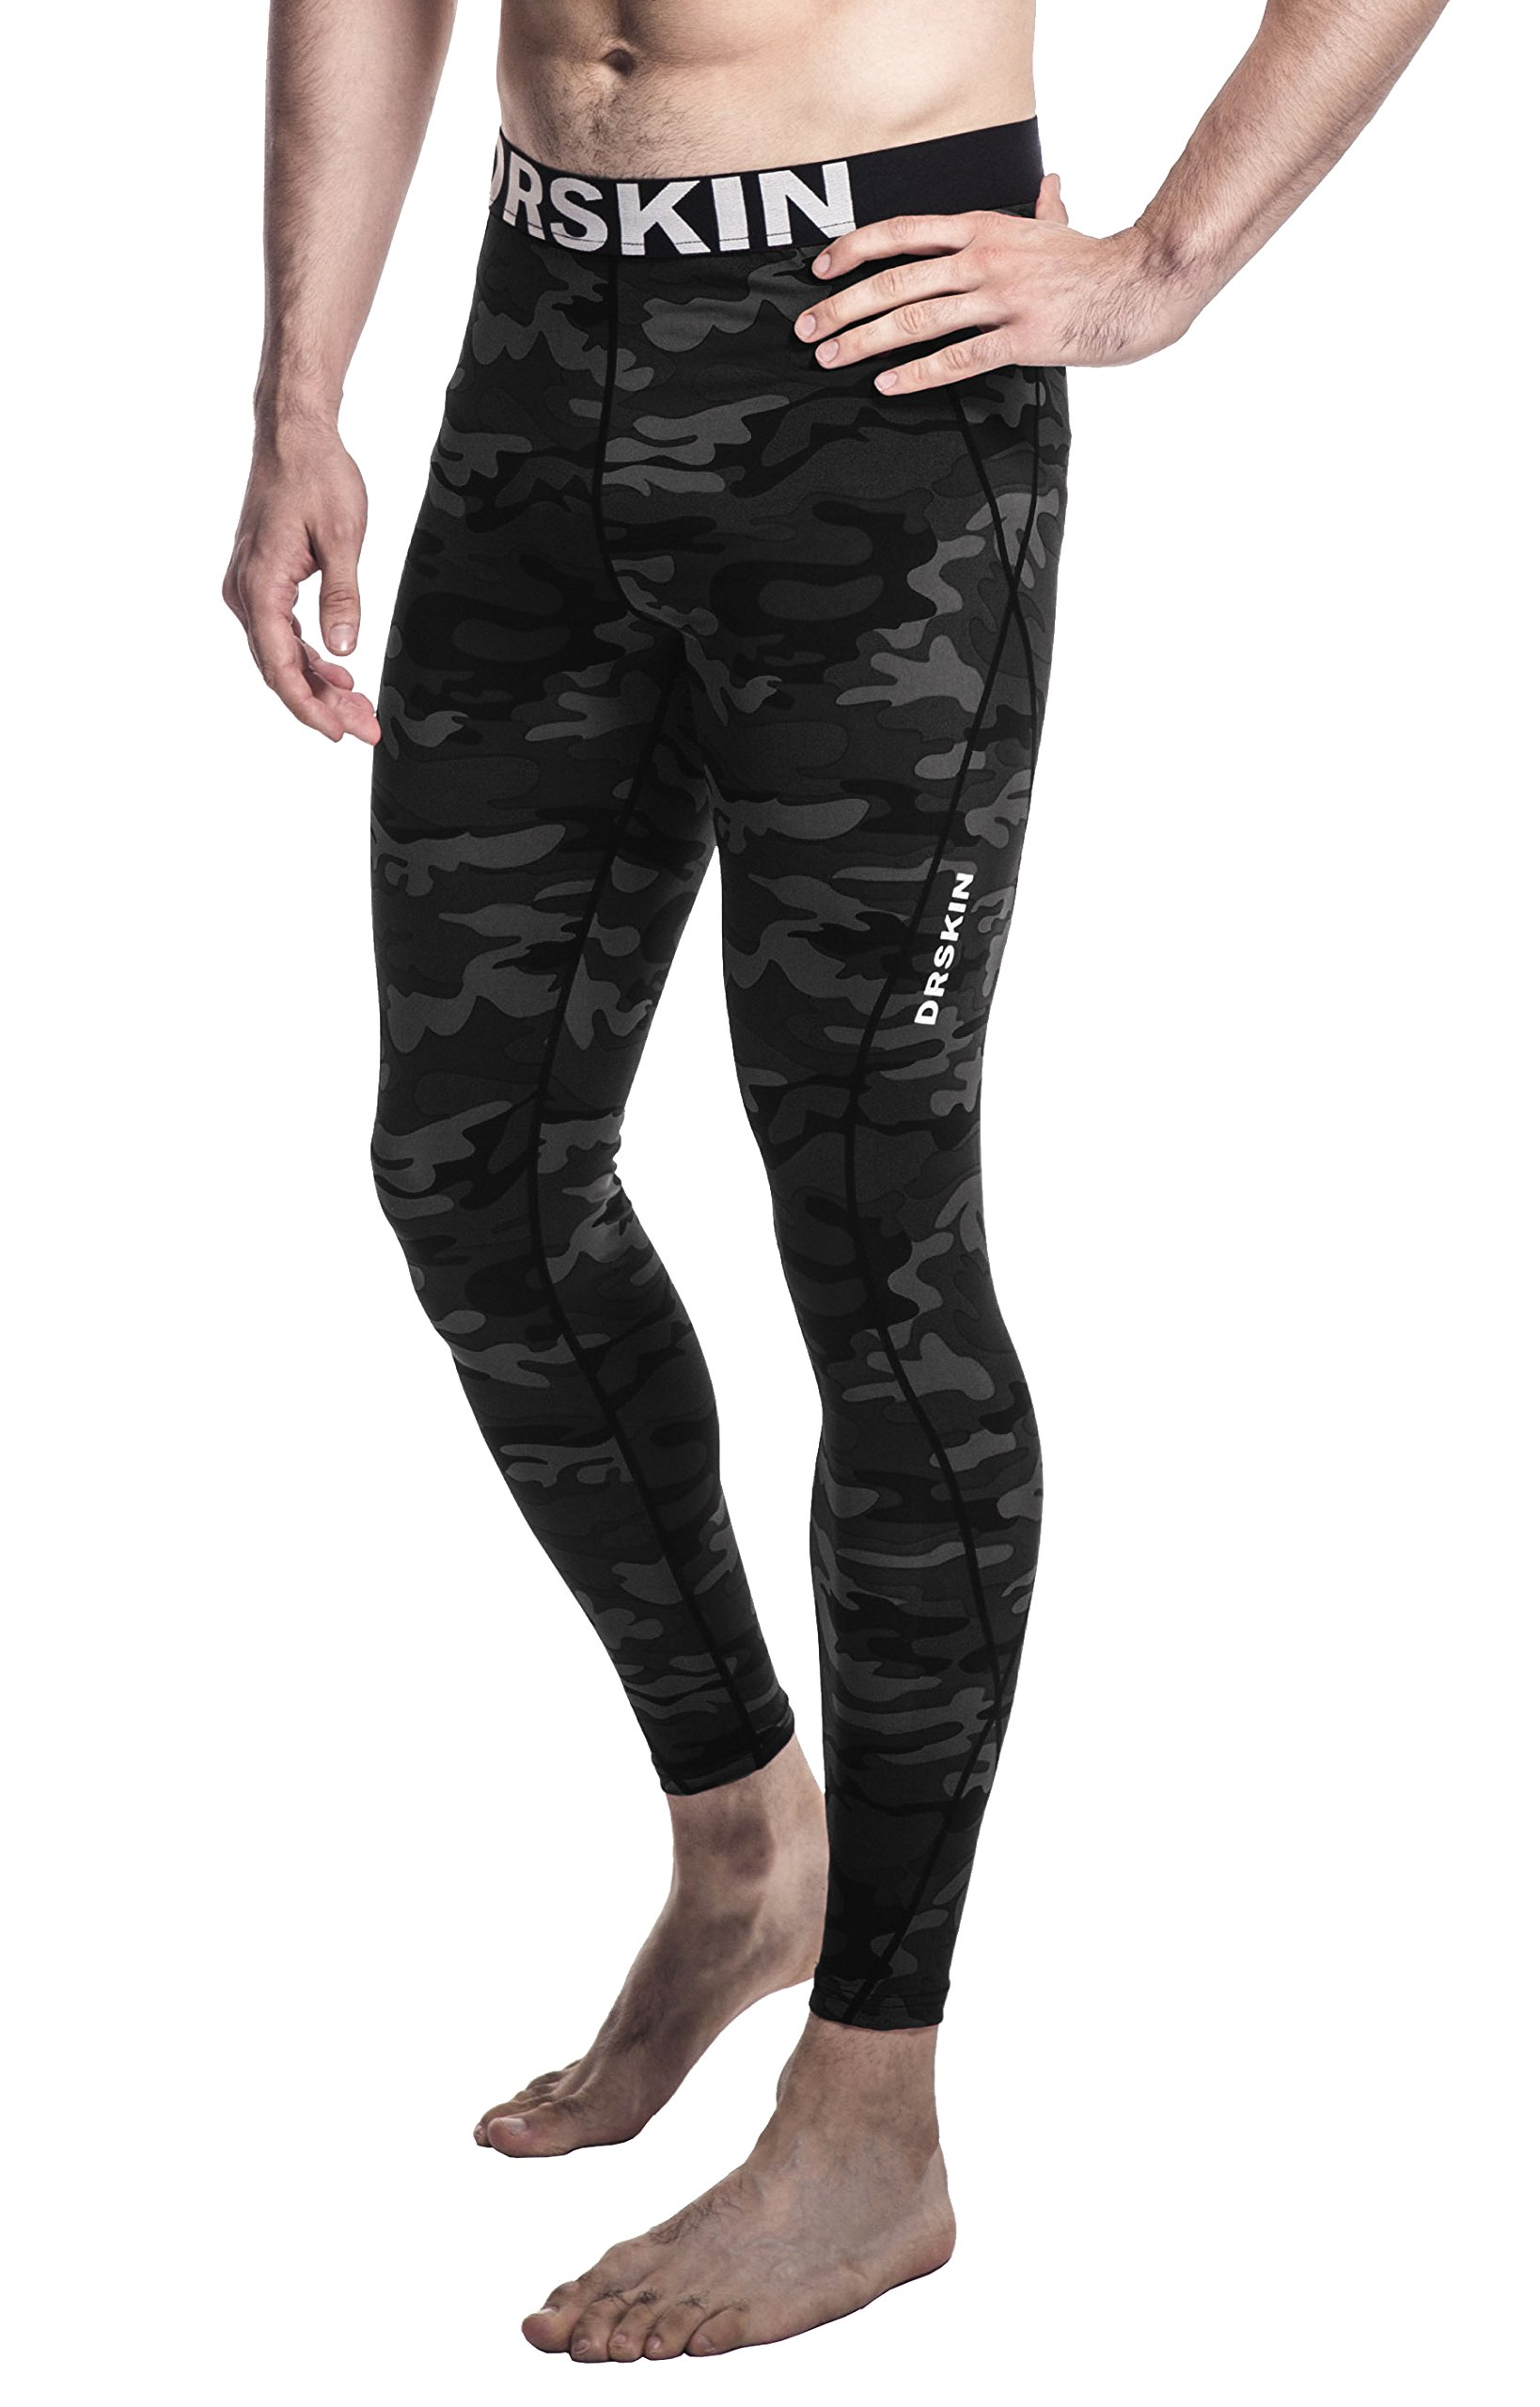 [DRSKIN] Compression Tight Pants or Shirts Base